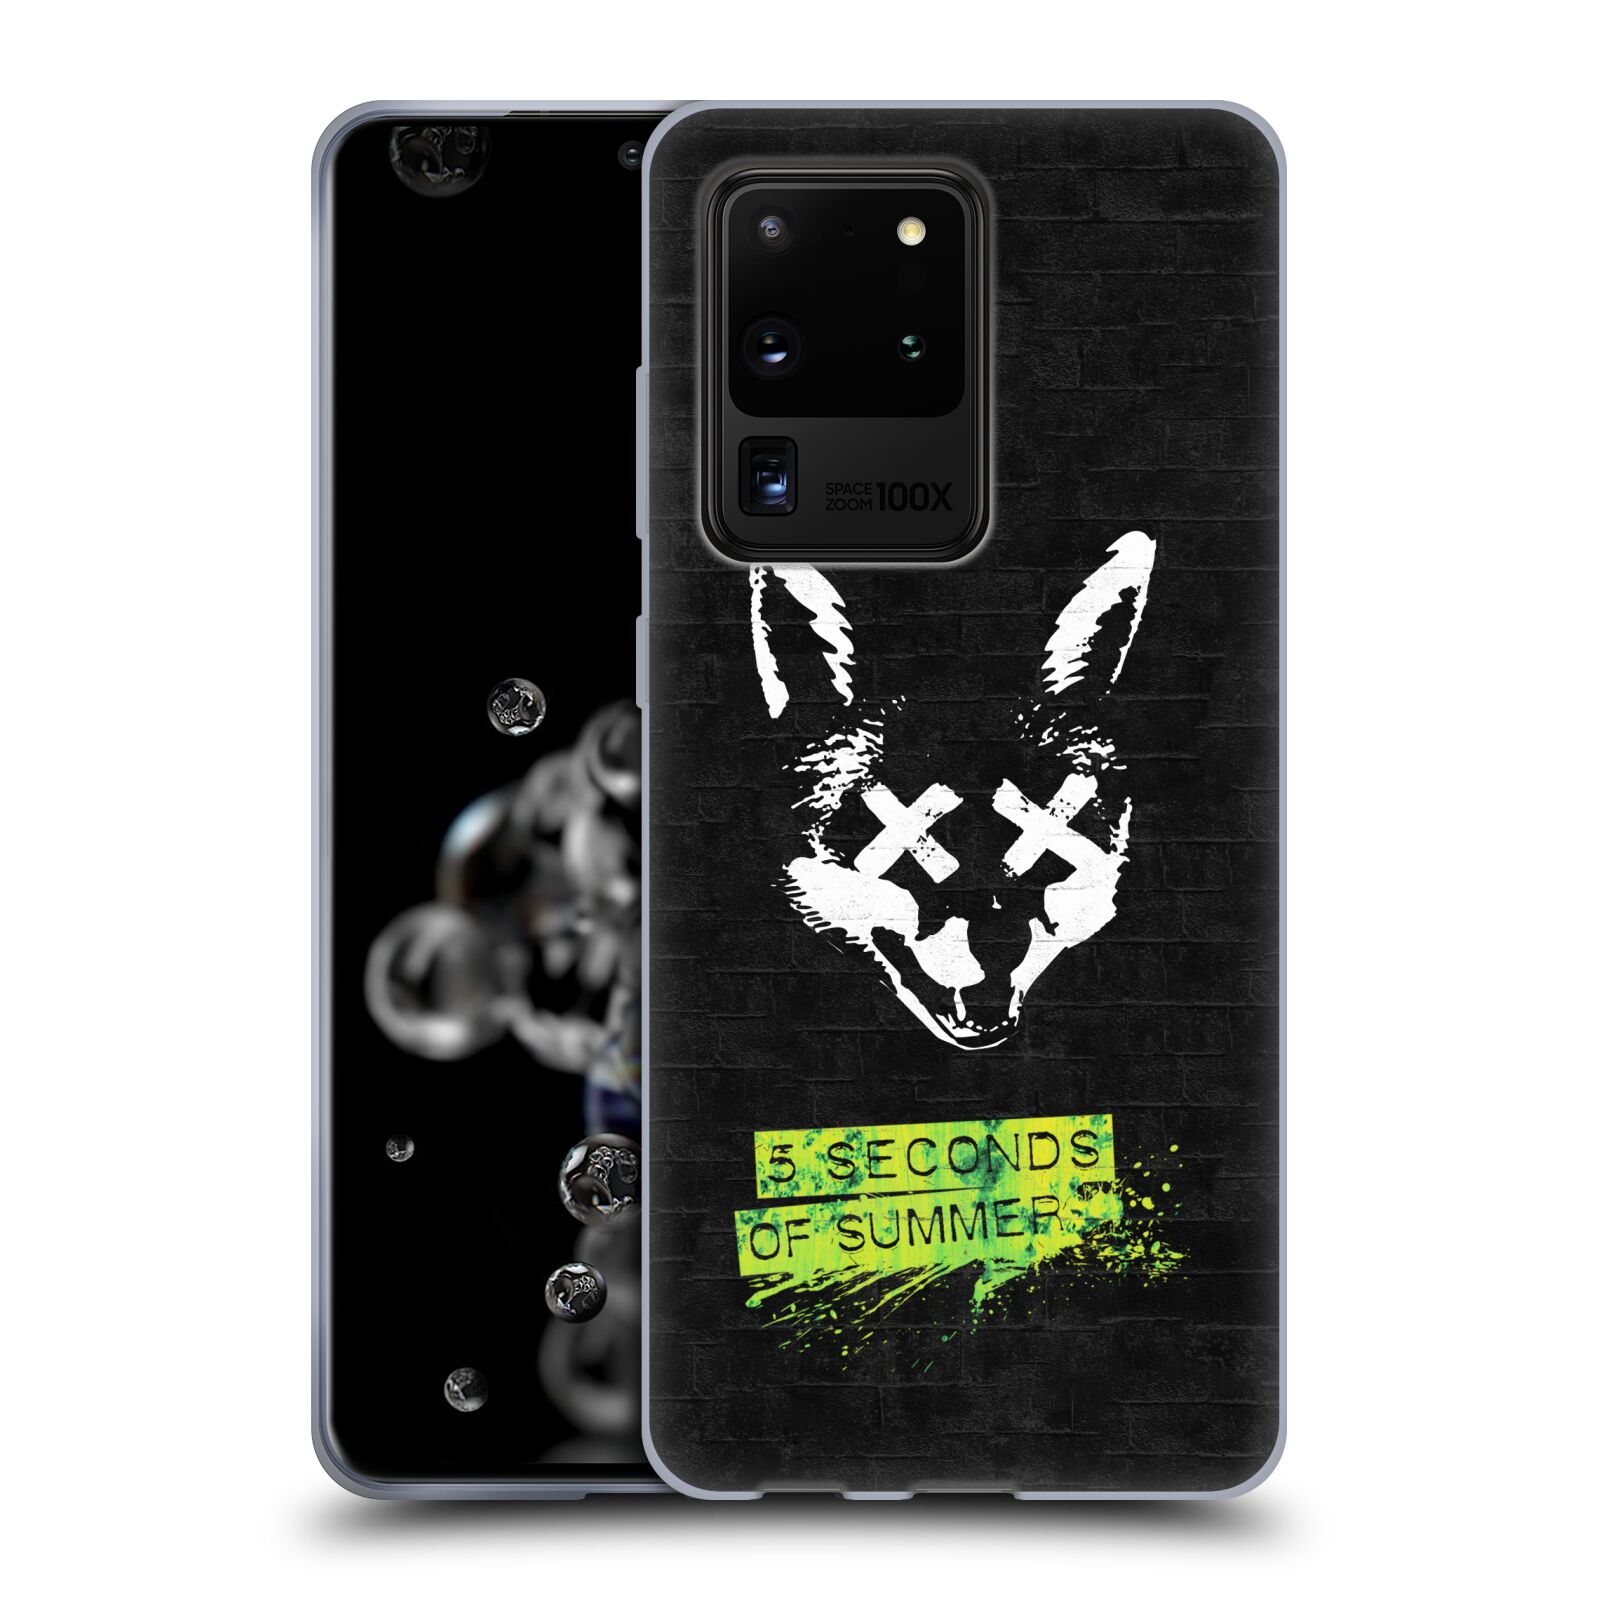 Silikonové pouzdro na mobil Samsung Galaxy S20 Ultra - Head Case - 5 Seconds of Summer - Fox